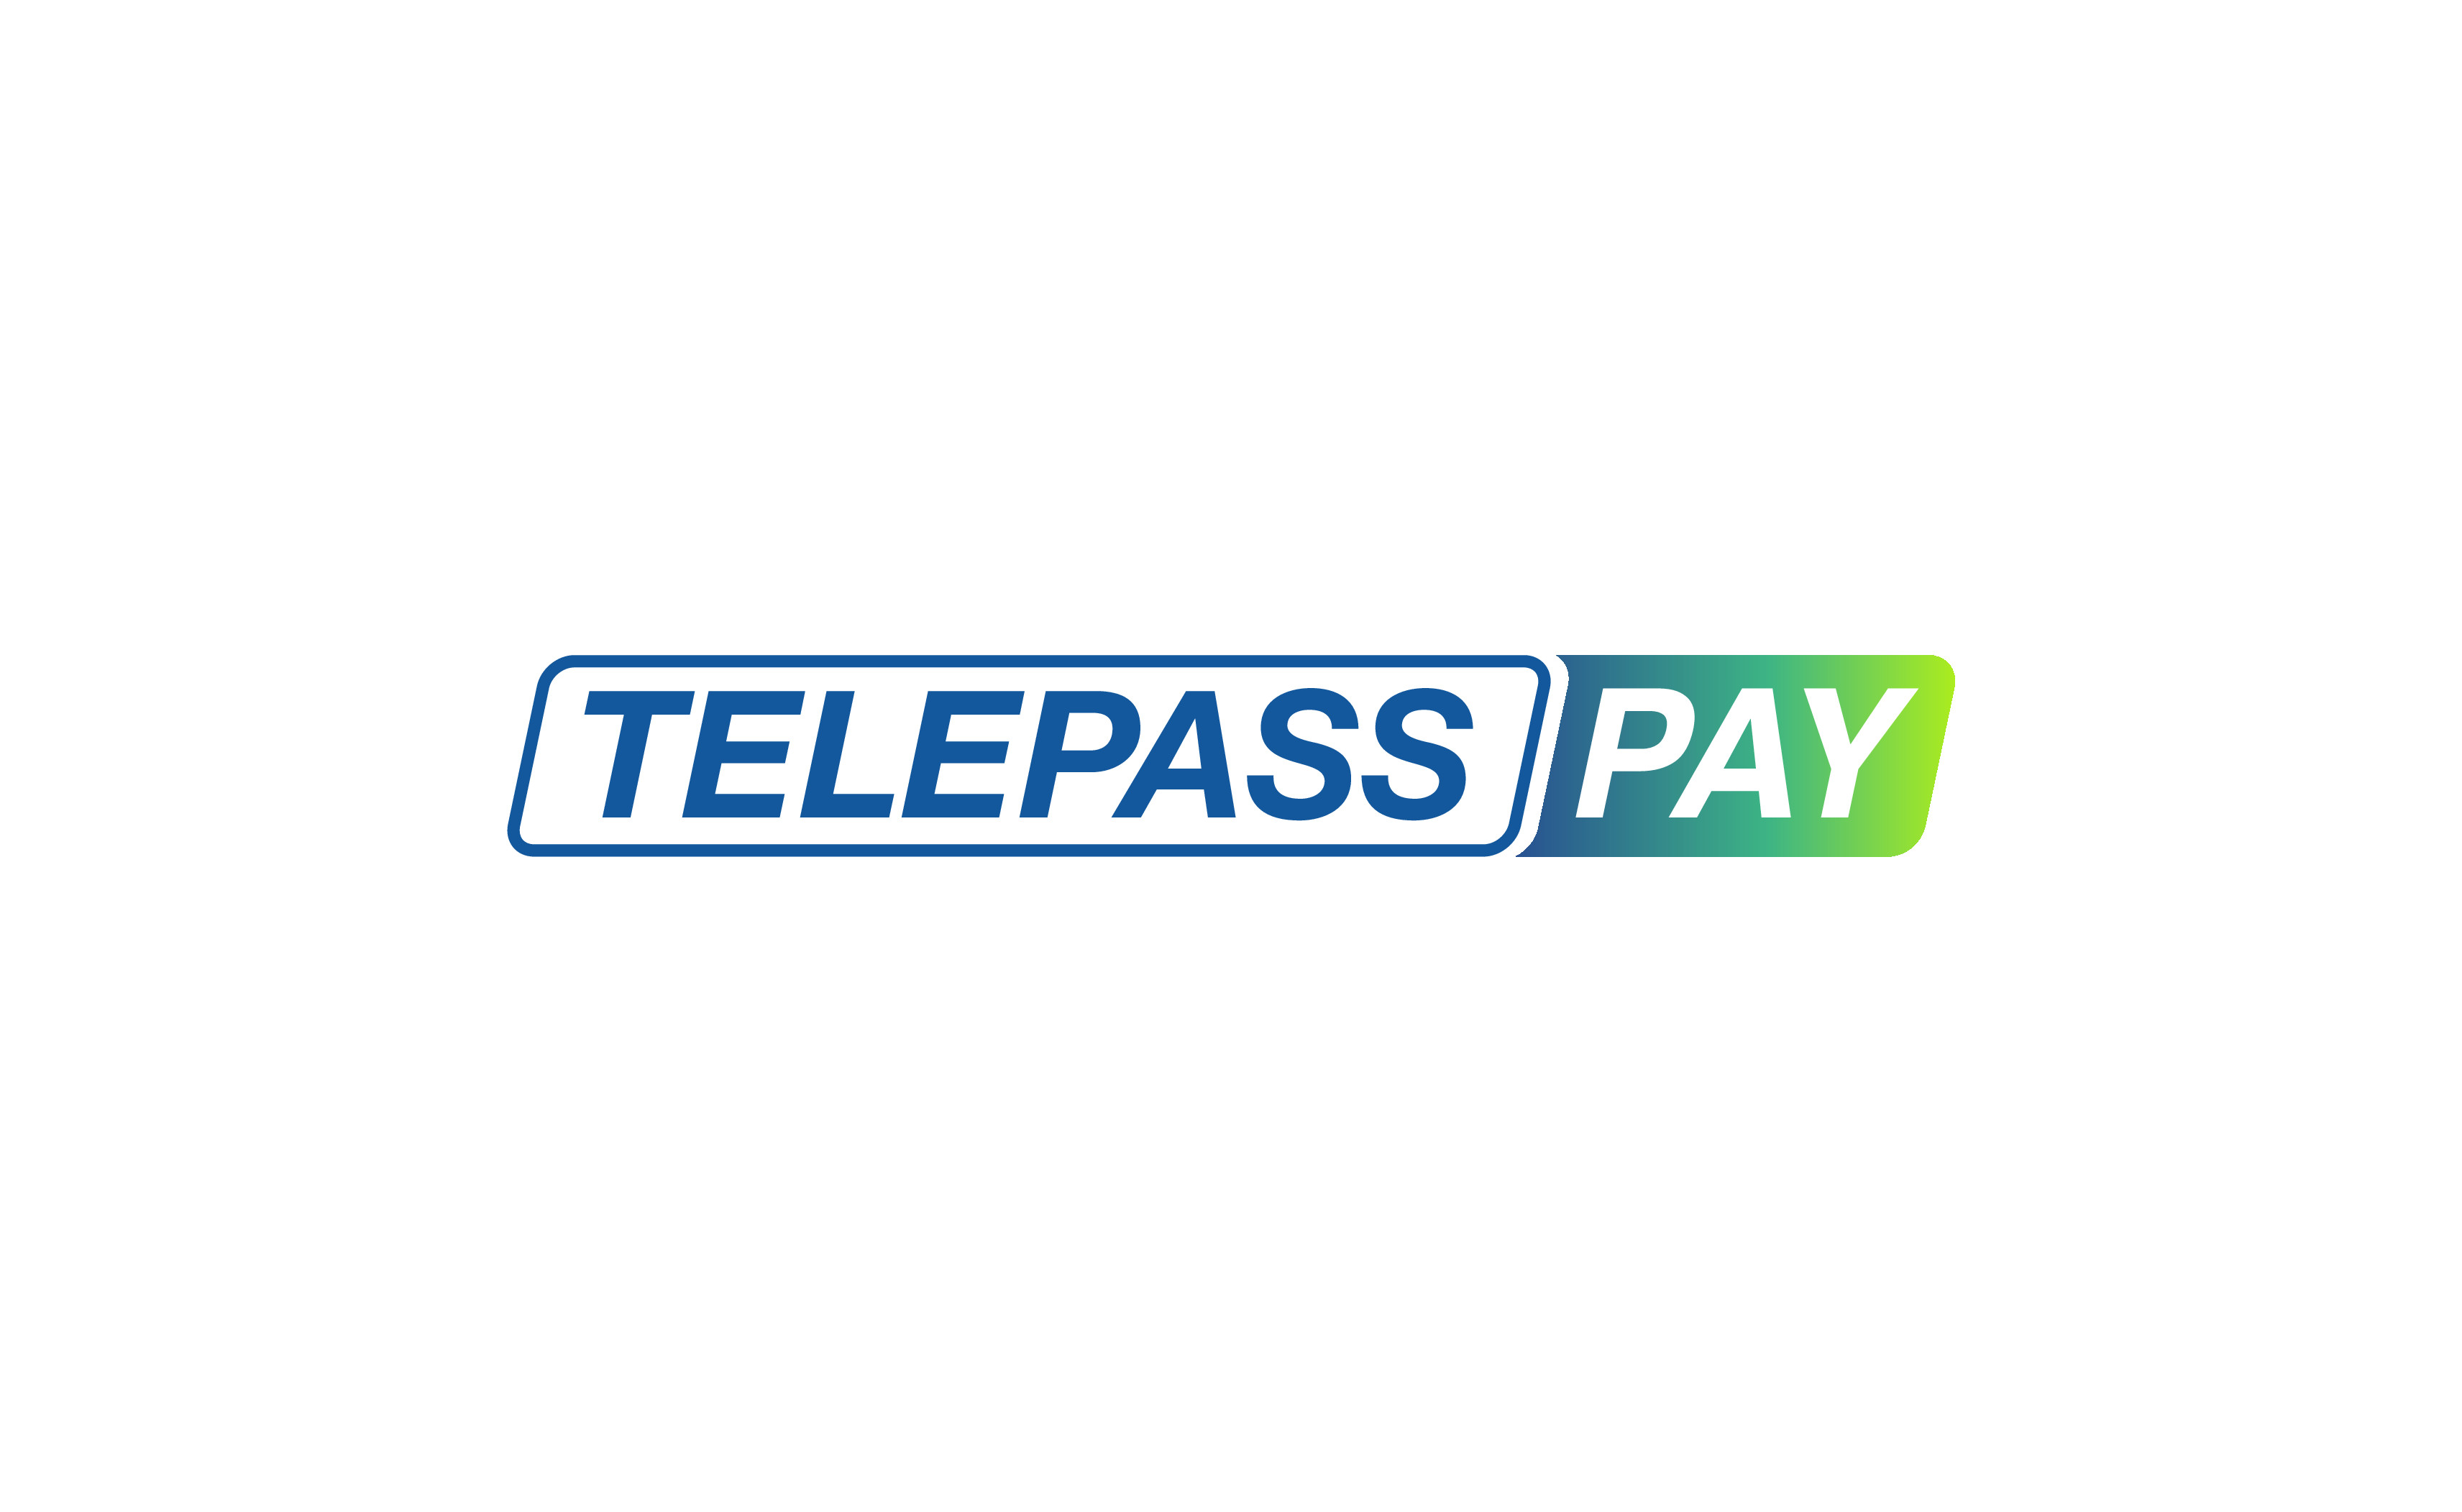 telepass pay